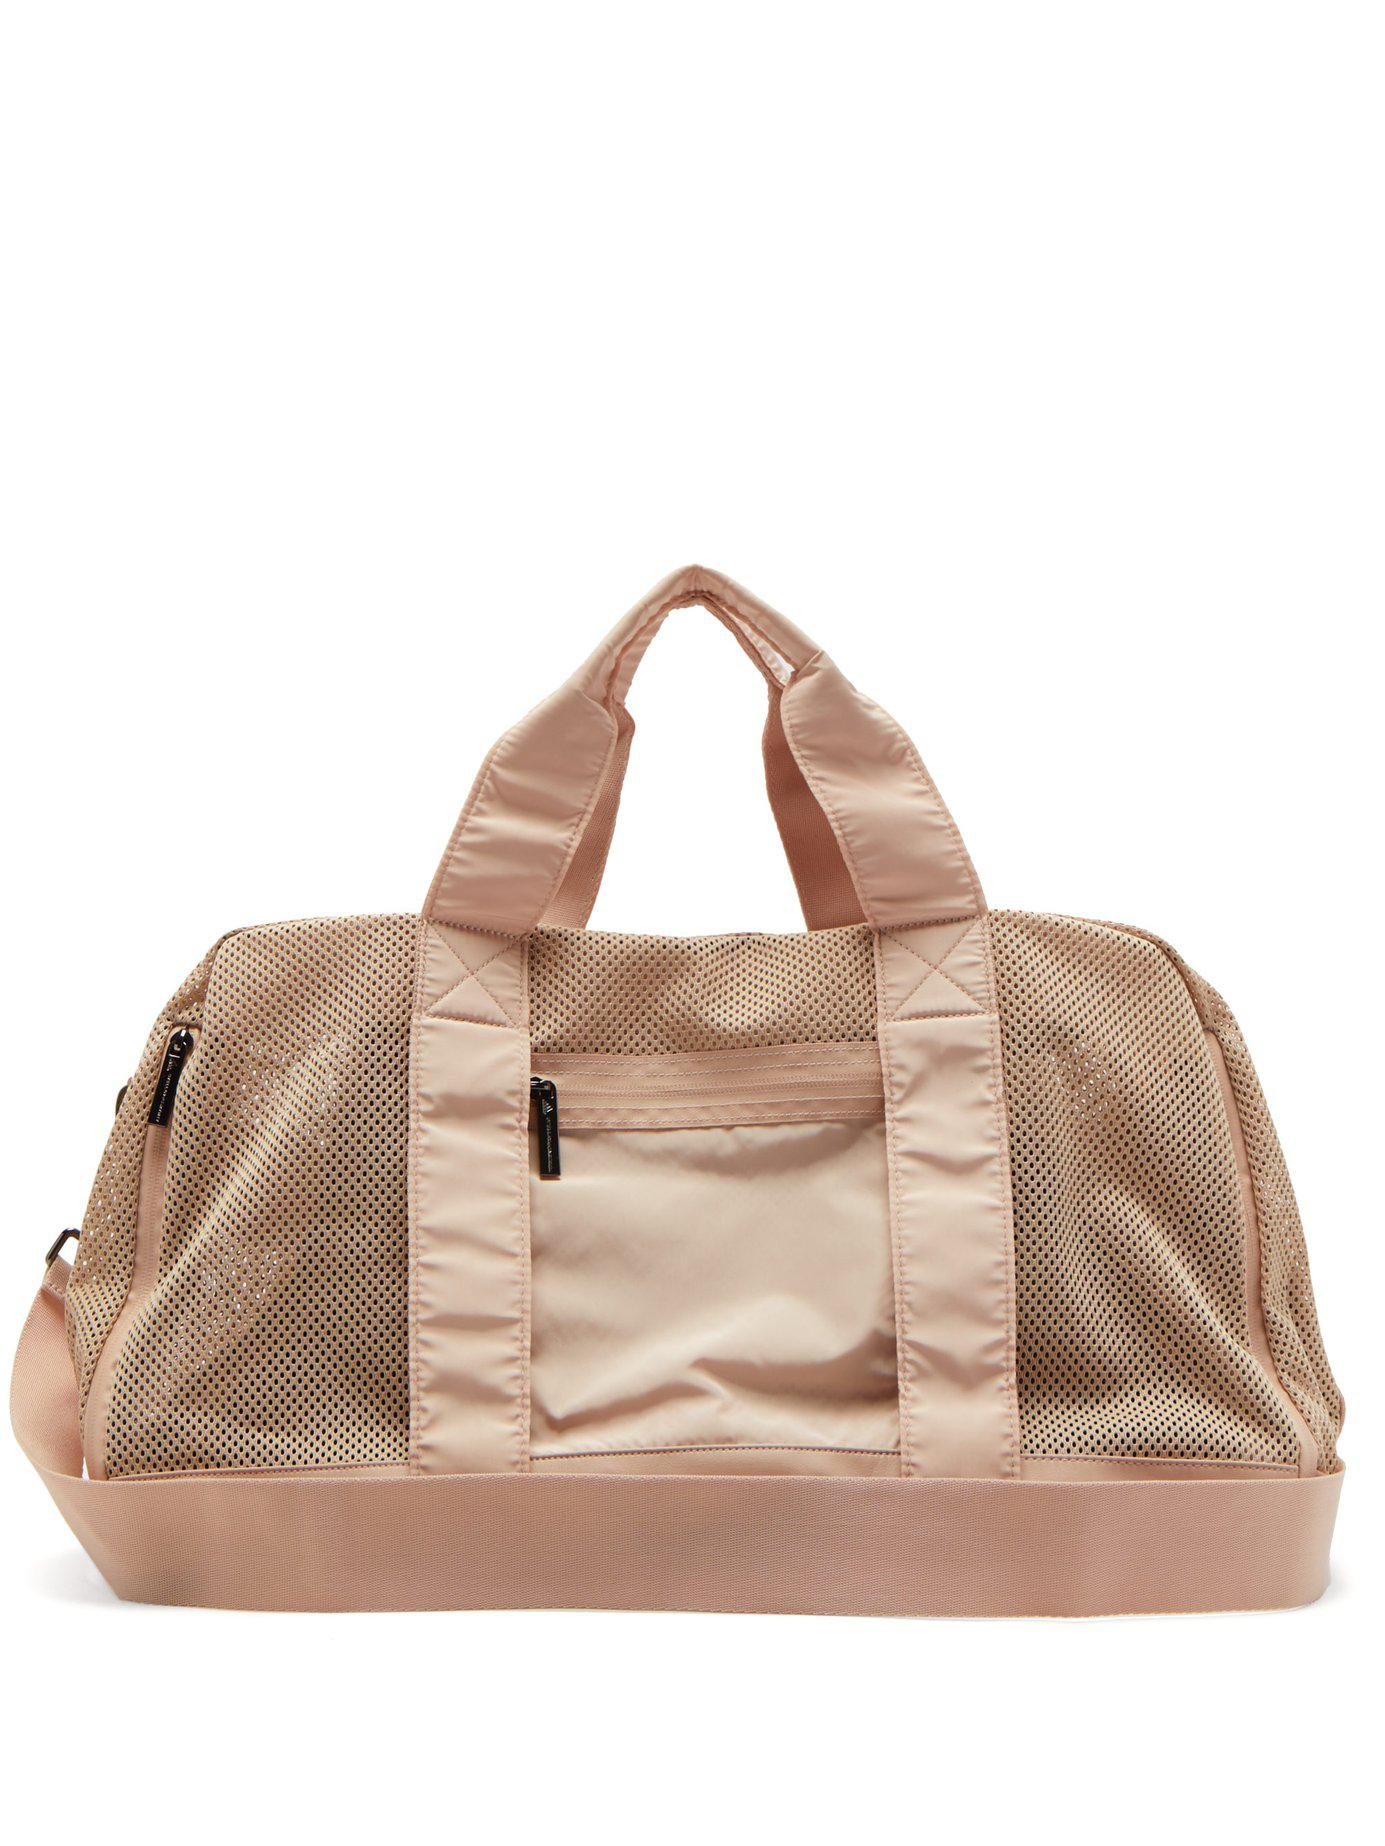 Lyst - Adidas By Stella Mccartney Yoga Bag ed6b4d86dee8d